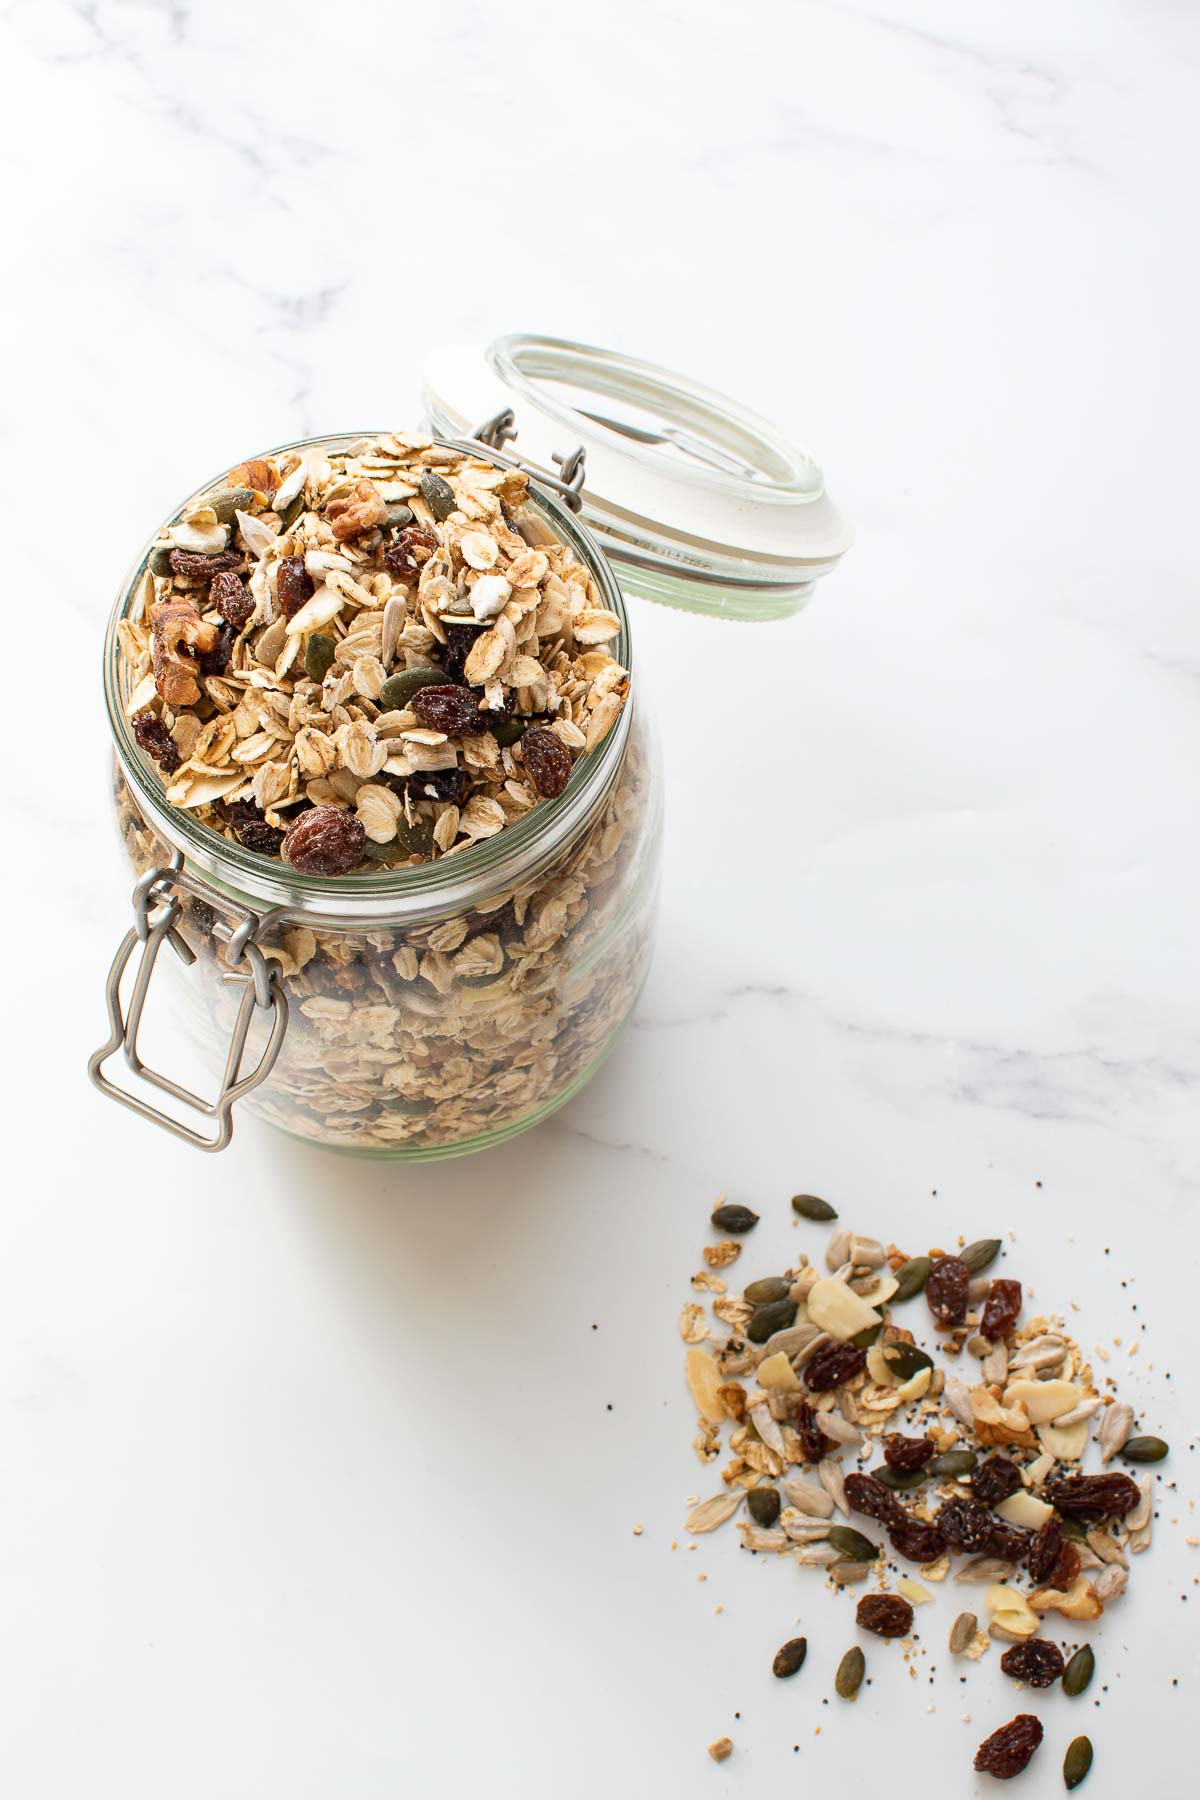 Muesli in a jar, with some muesli scattered around on a marble table.